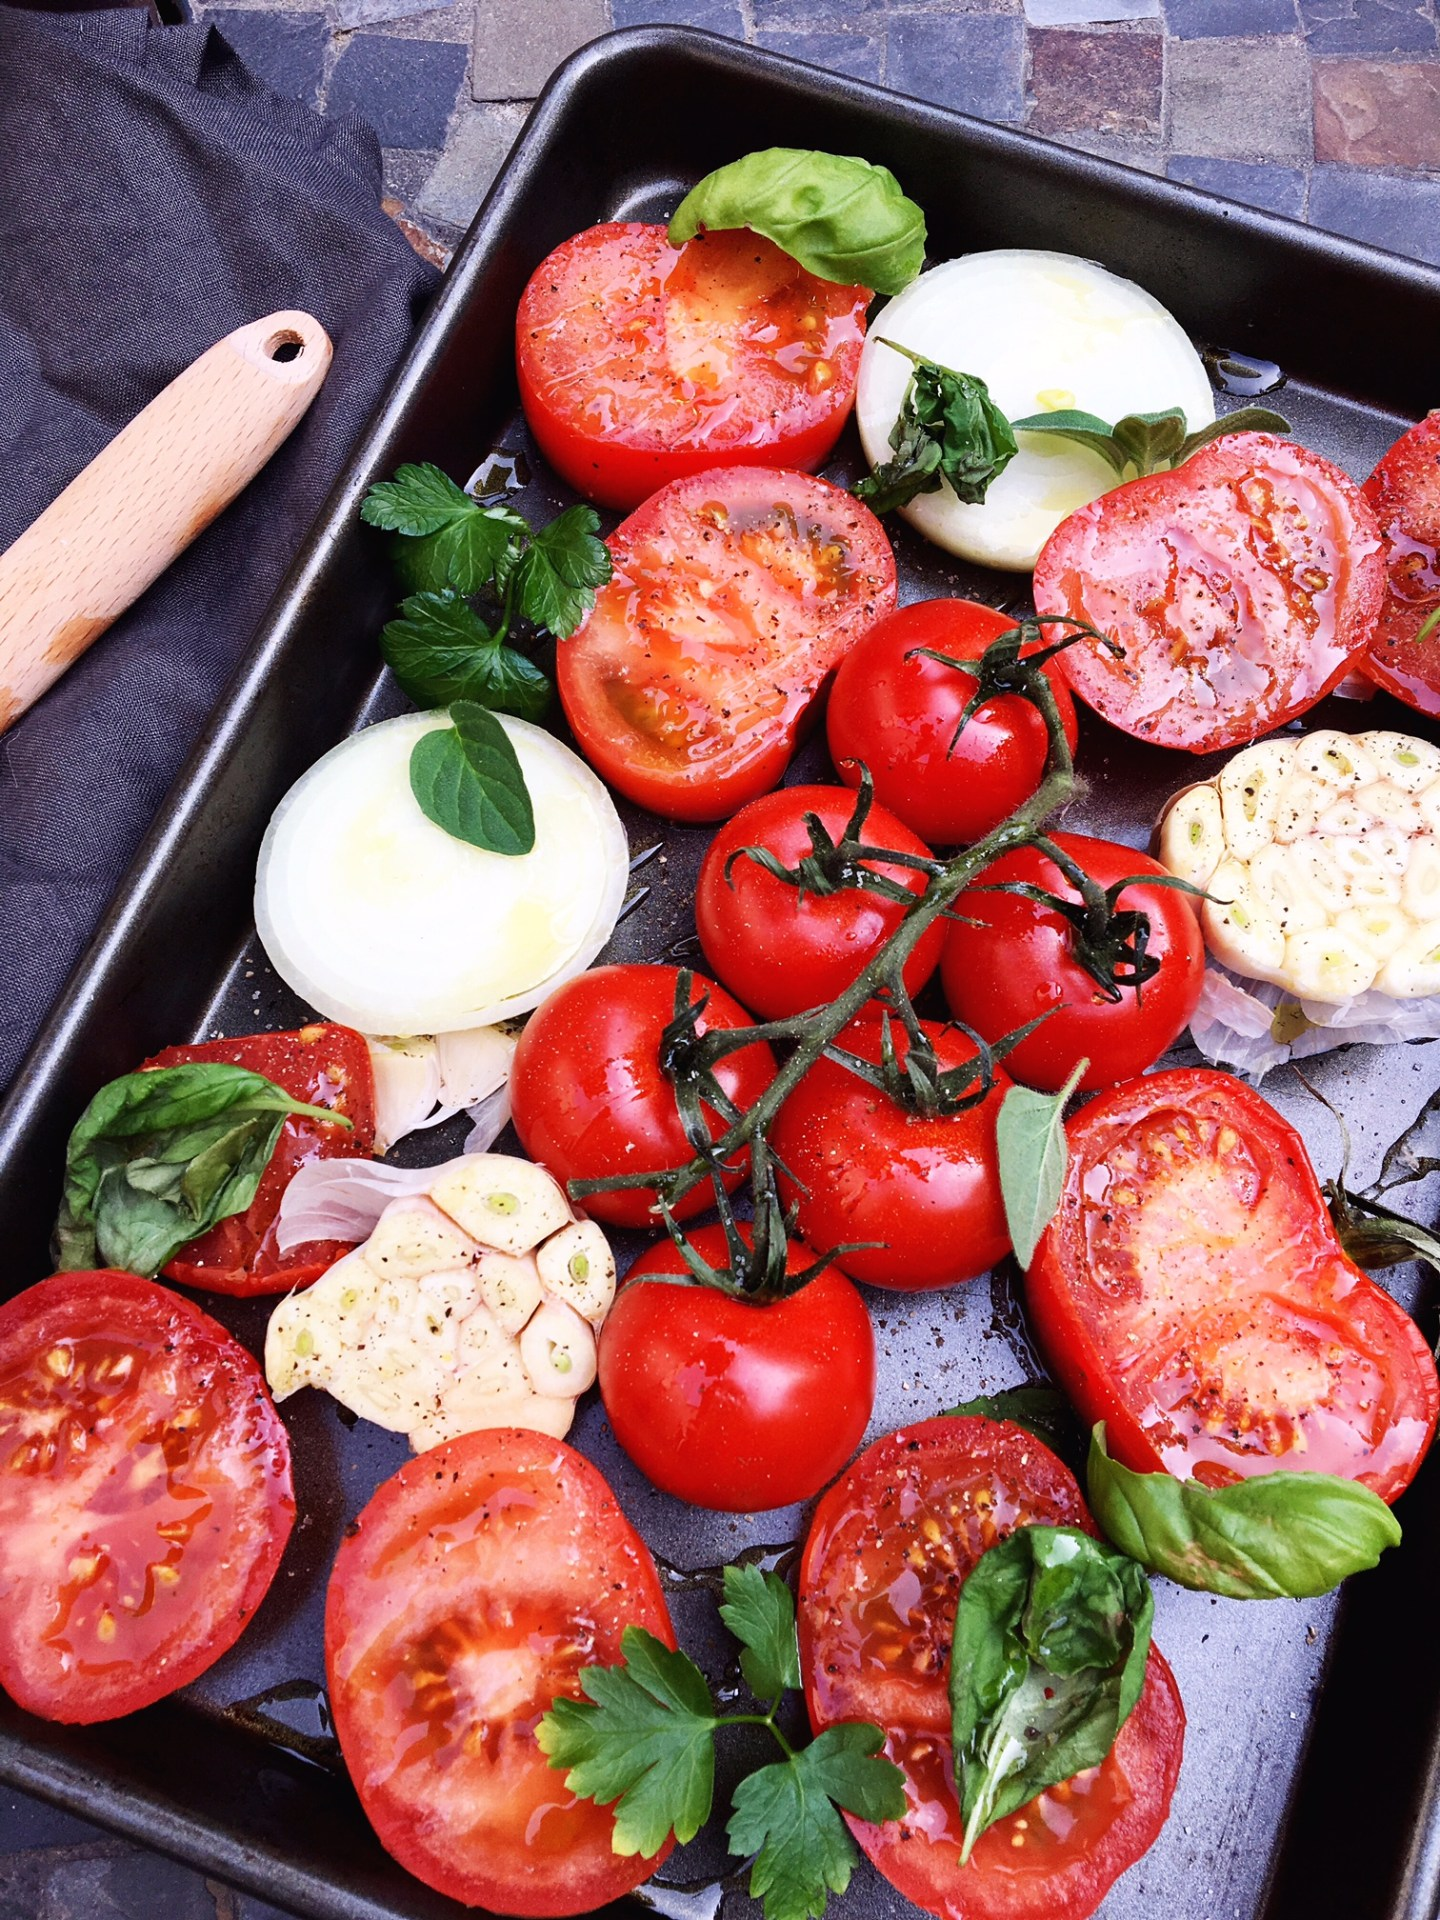 Lifestyle Blogger Jenny Meassick of Chocolate and Lace shares her recipe for Roasted Tomatoes, Garlic and Herbs